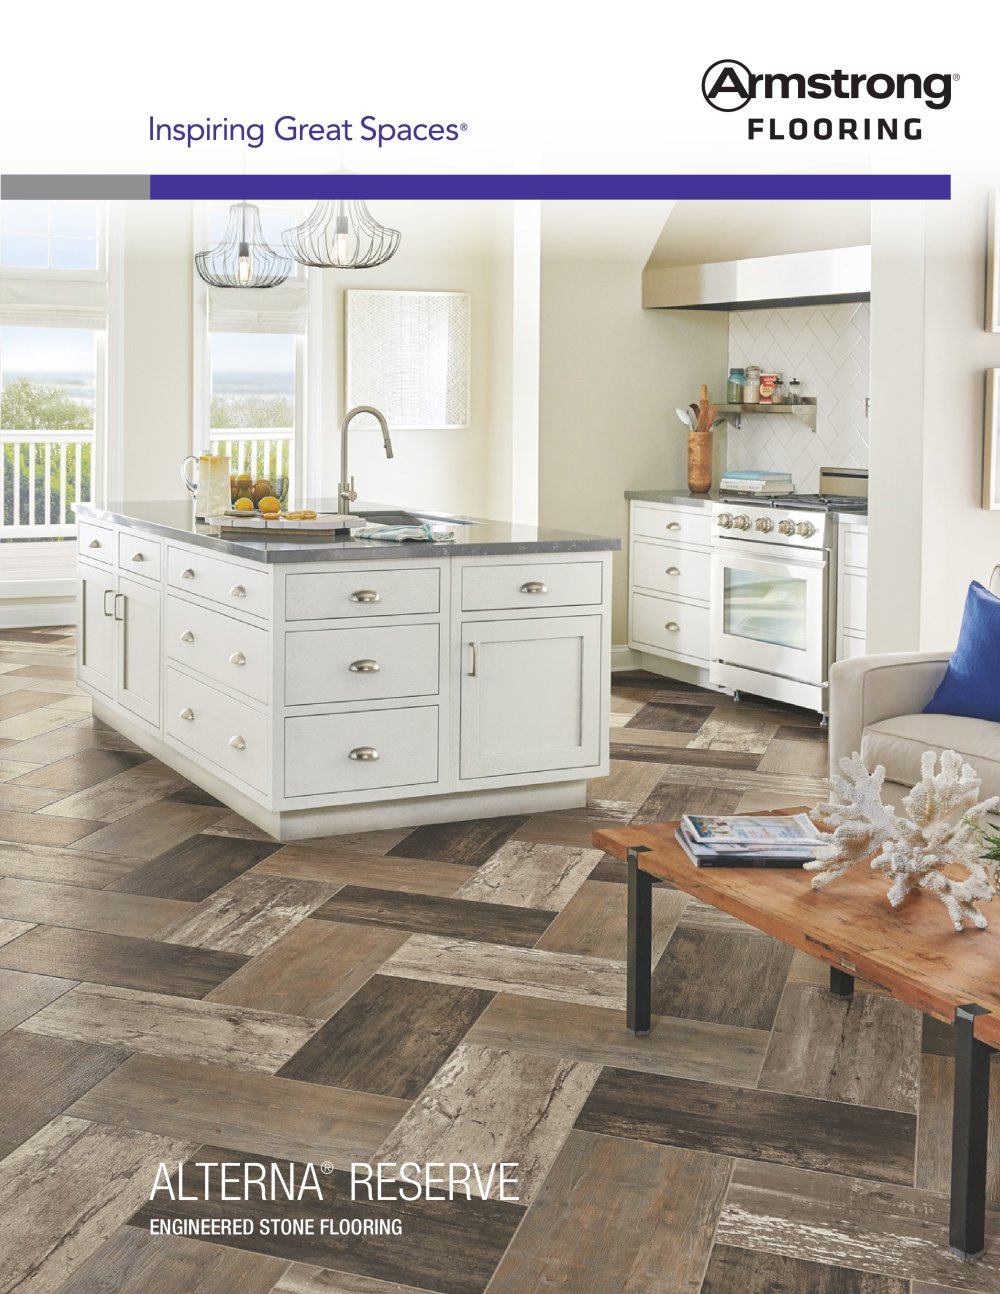 diamond tile articles collection armstrong engineered floors expands alterna with flooring plank technology